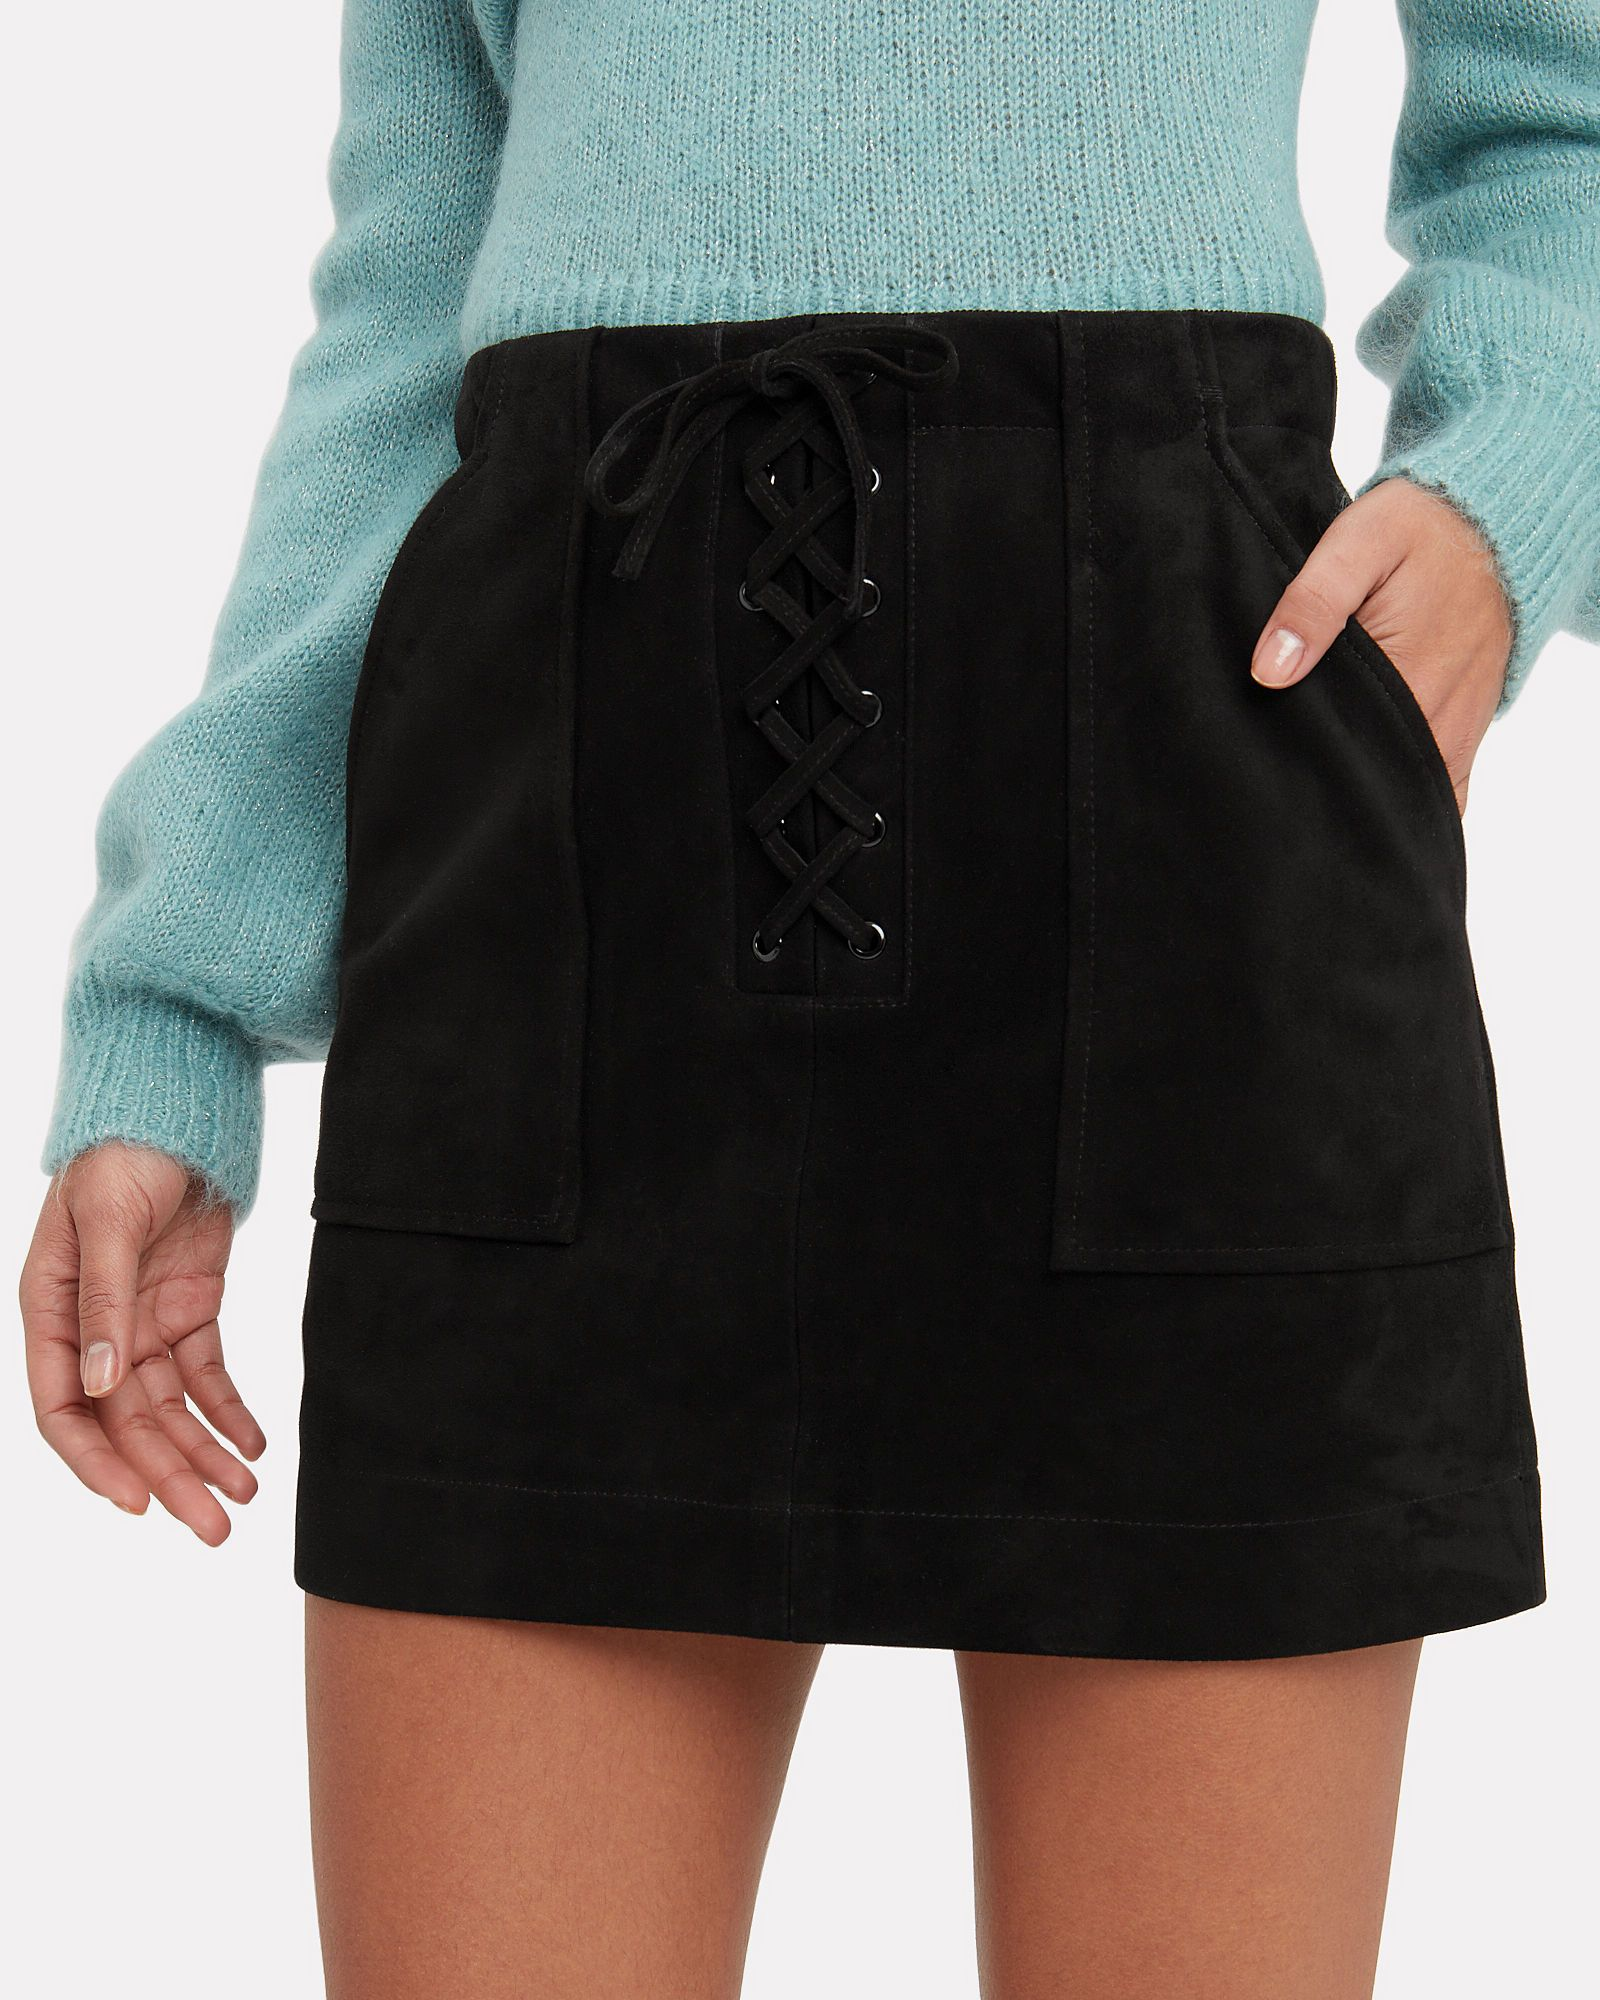 d5fe470e665e Ainsley Suede Mini Skirt, BLACK, hi-res | Wish List in 2019 | Mini ...